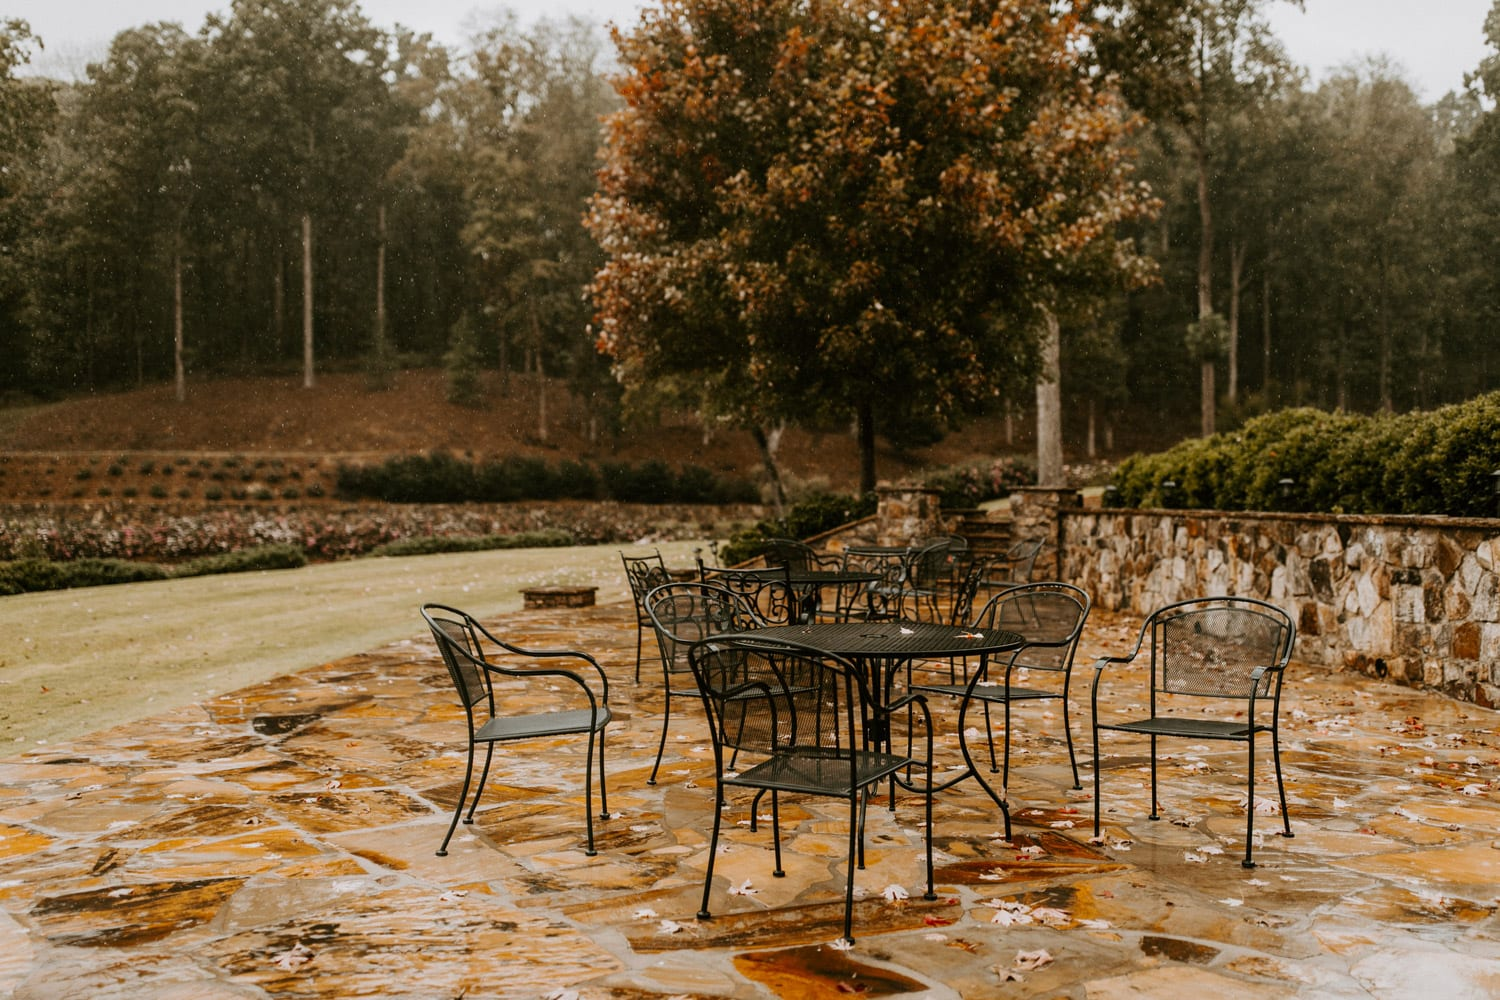 Stone patio during an autumn rain